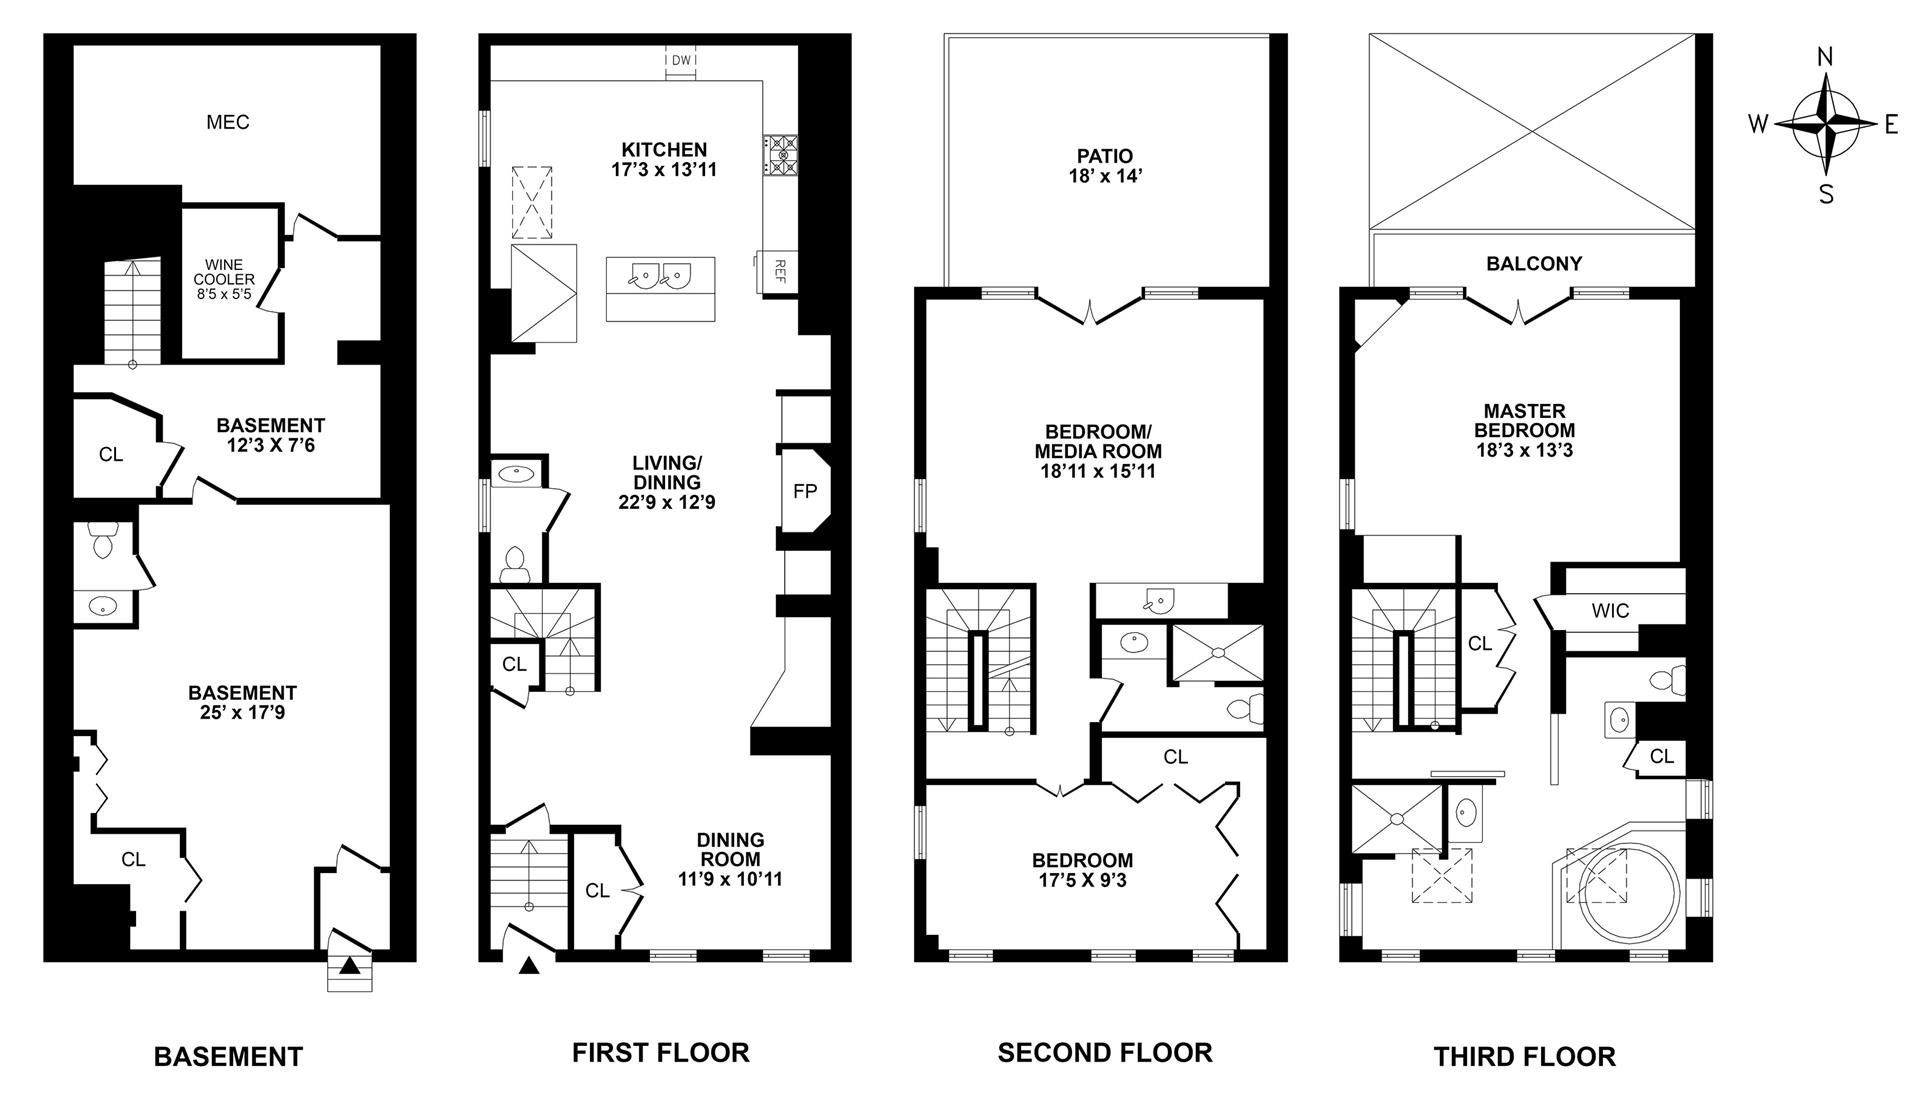 Floor plan of 514 Broome St - SoHo - Nolita, New York